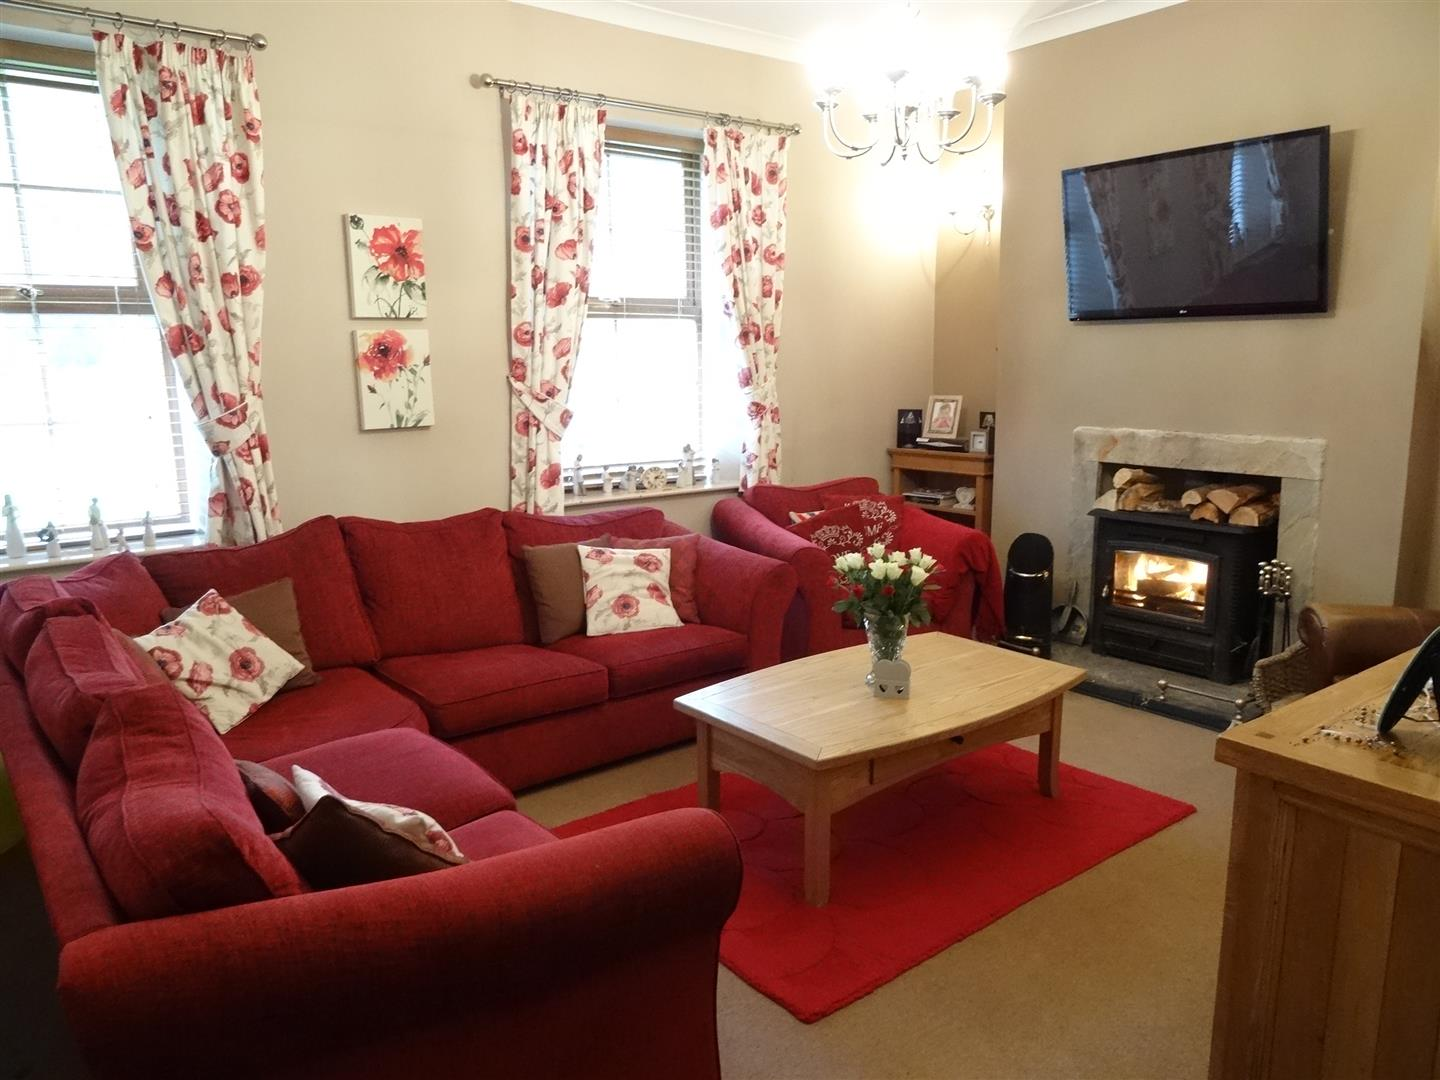 4 Bedrooms Cottage - Detached For Sale Station Cottage St. Lawrence Place Carlisle